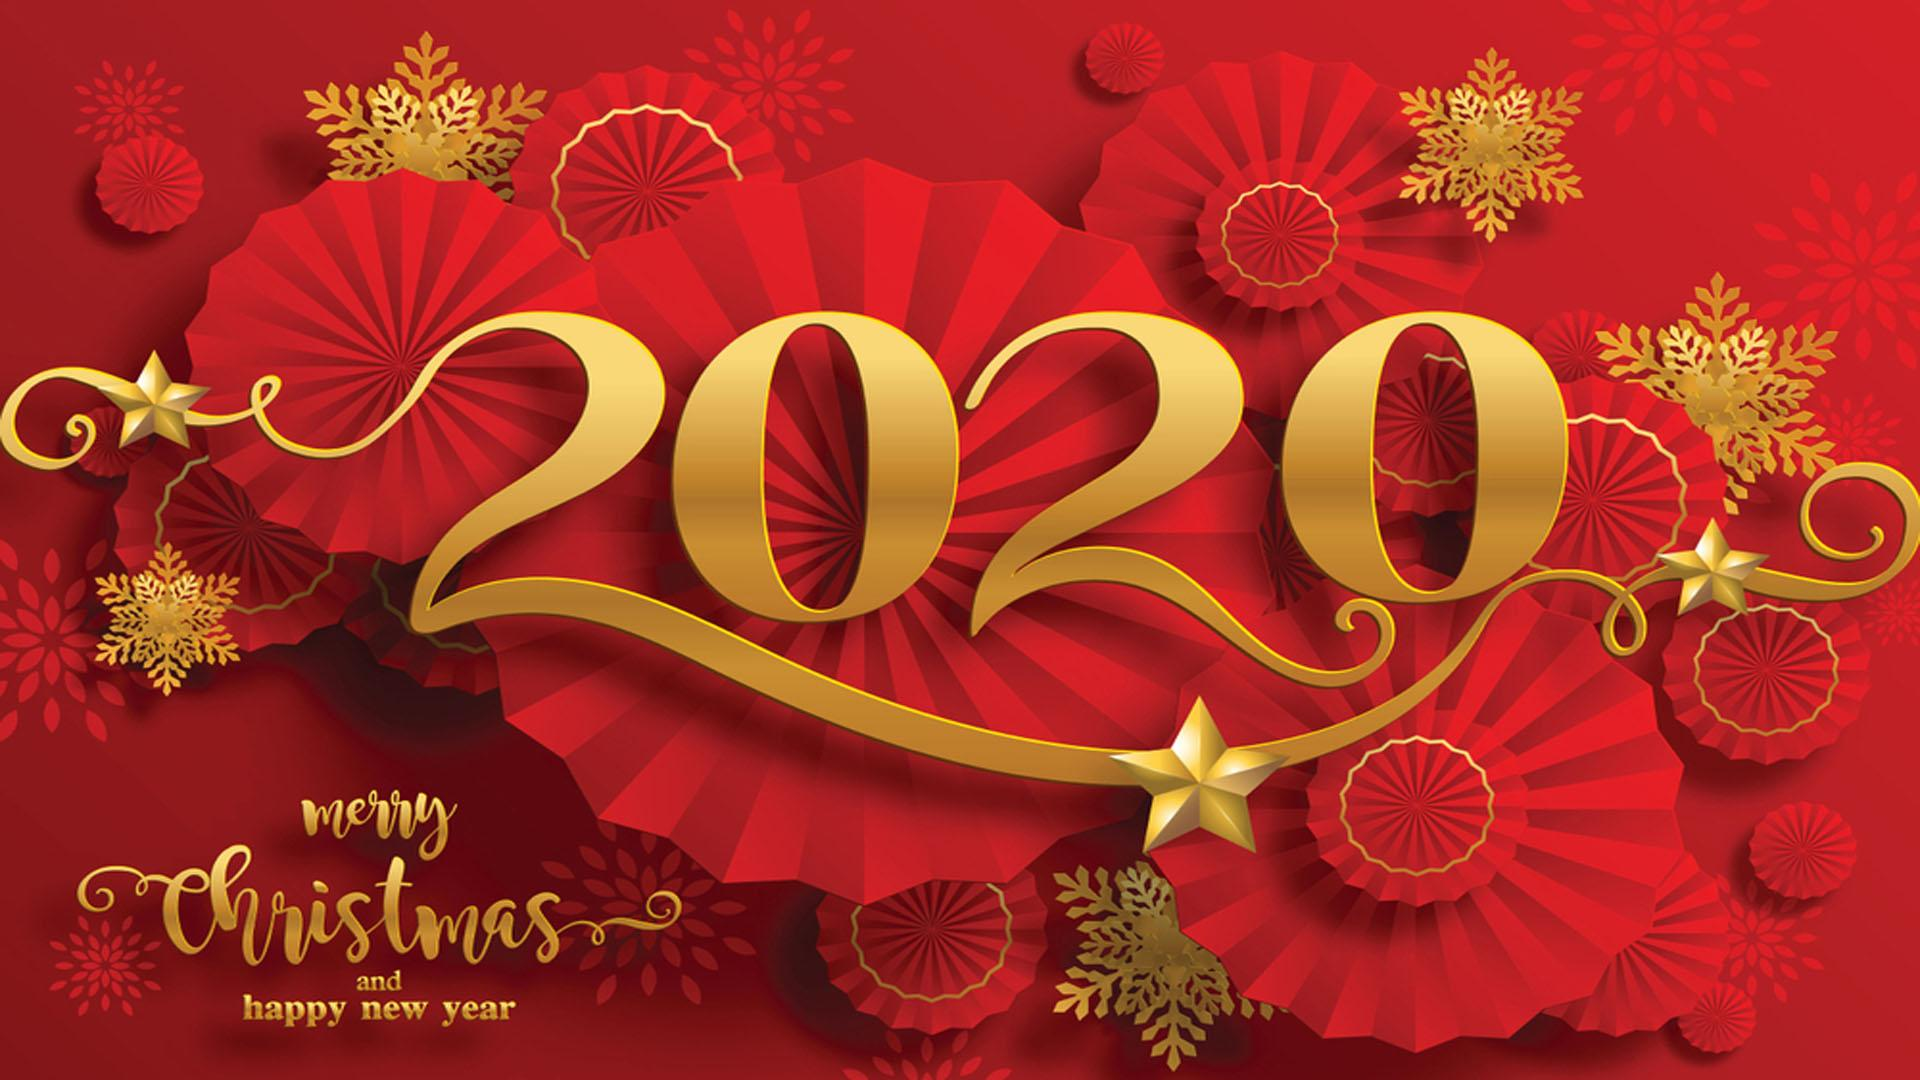 Chinese New Year 2020 Greeting Card For Mobile Phones Tablet